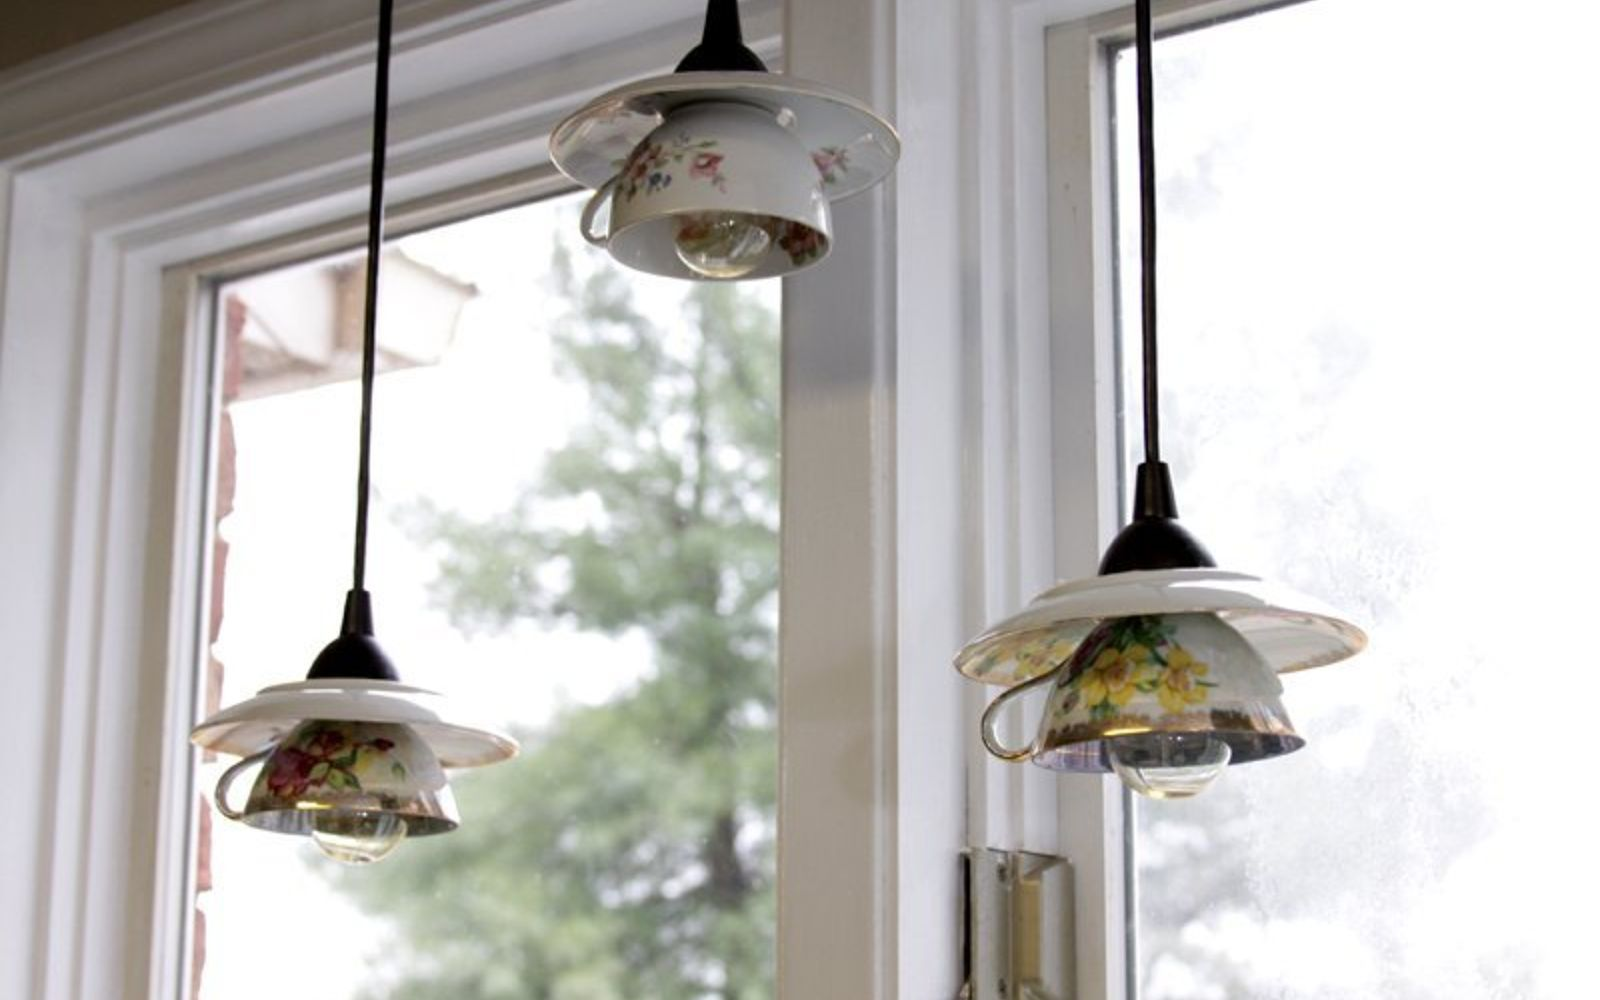 s don t ditch your broken teacups til you see what people do with them, repurposing upcycling, Or turn a whole set into many pendant lights